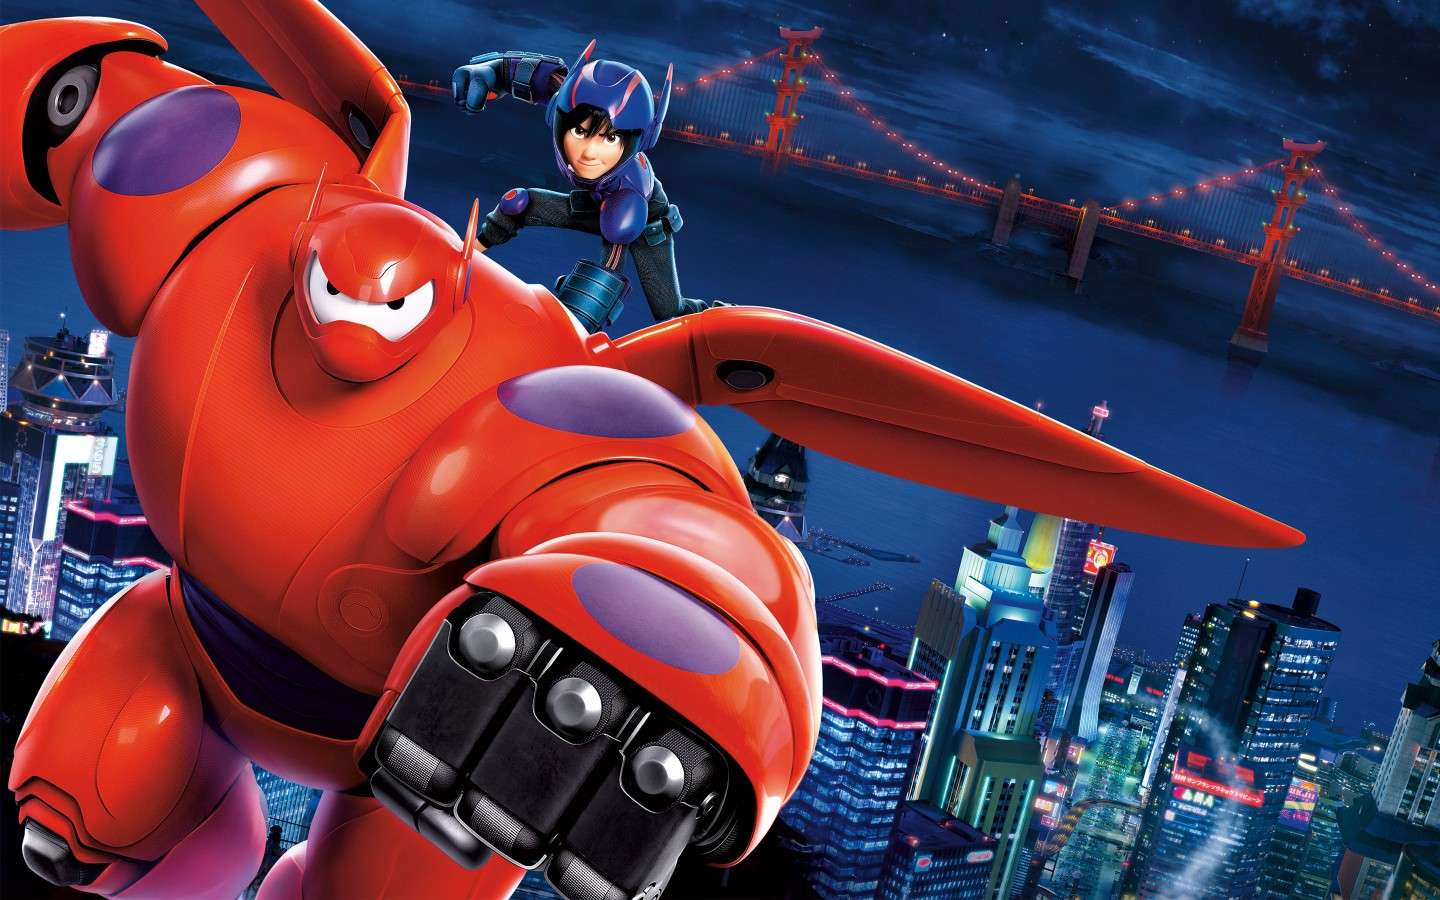 Pronti a combattere in Big Hero 6